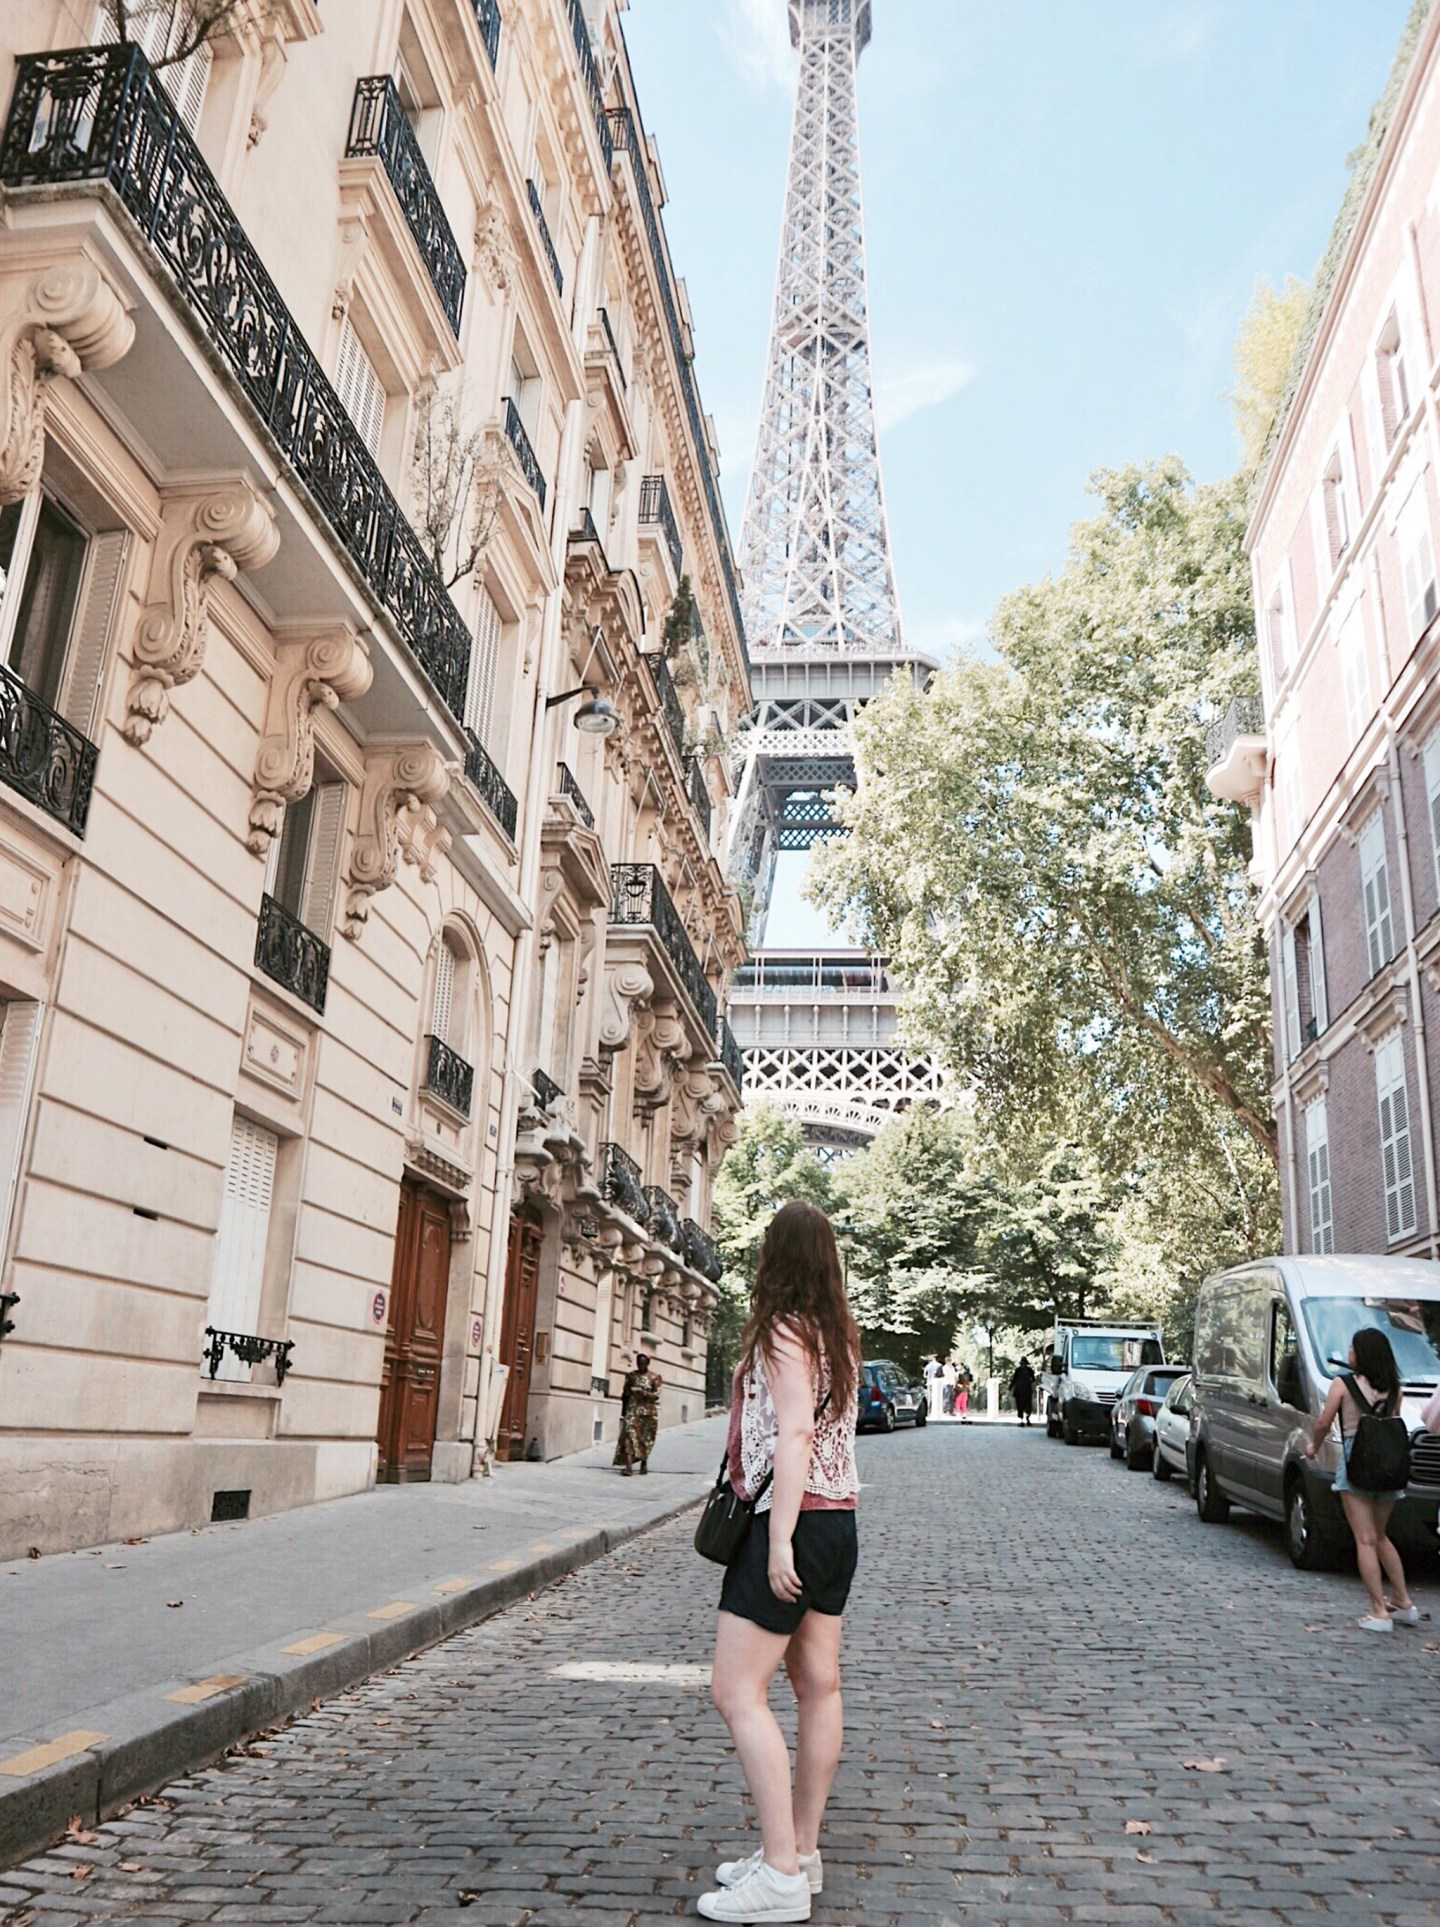 You Should Visit These Instagram Worthy Places In Paris & Berlin | Inspiration: Photography